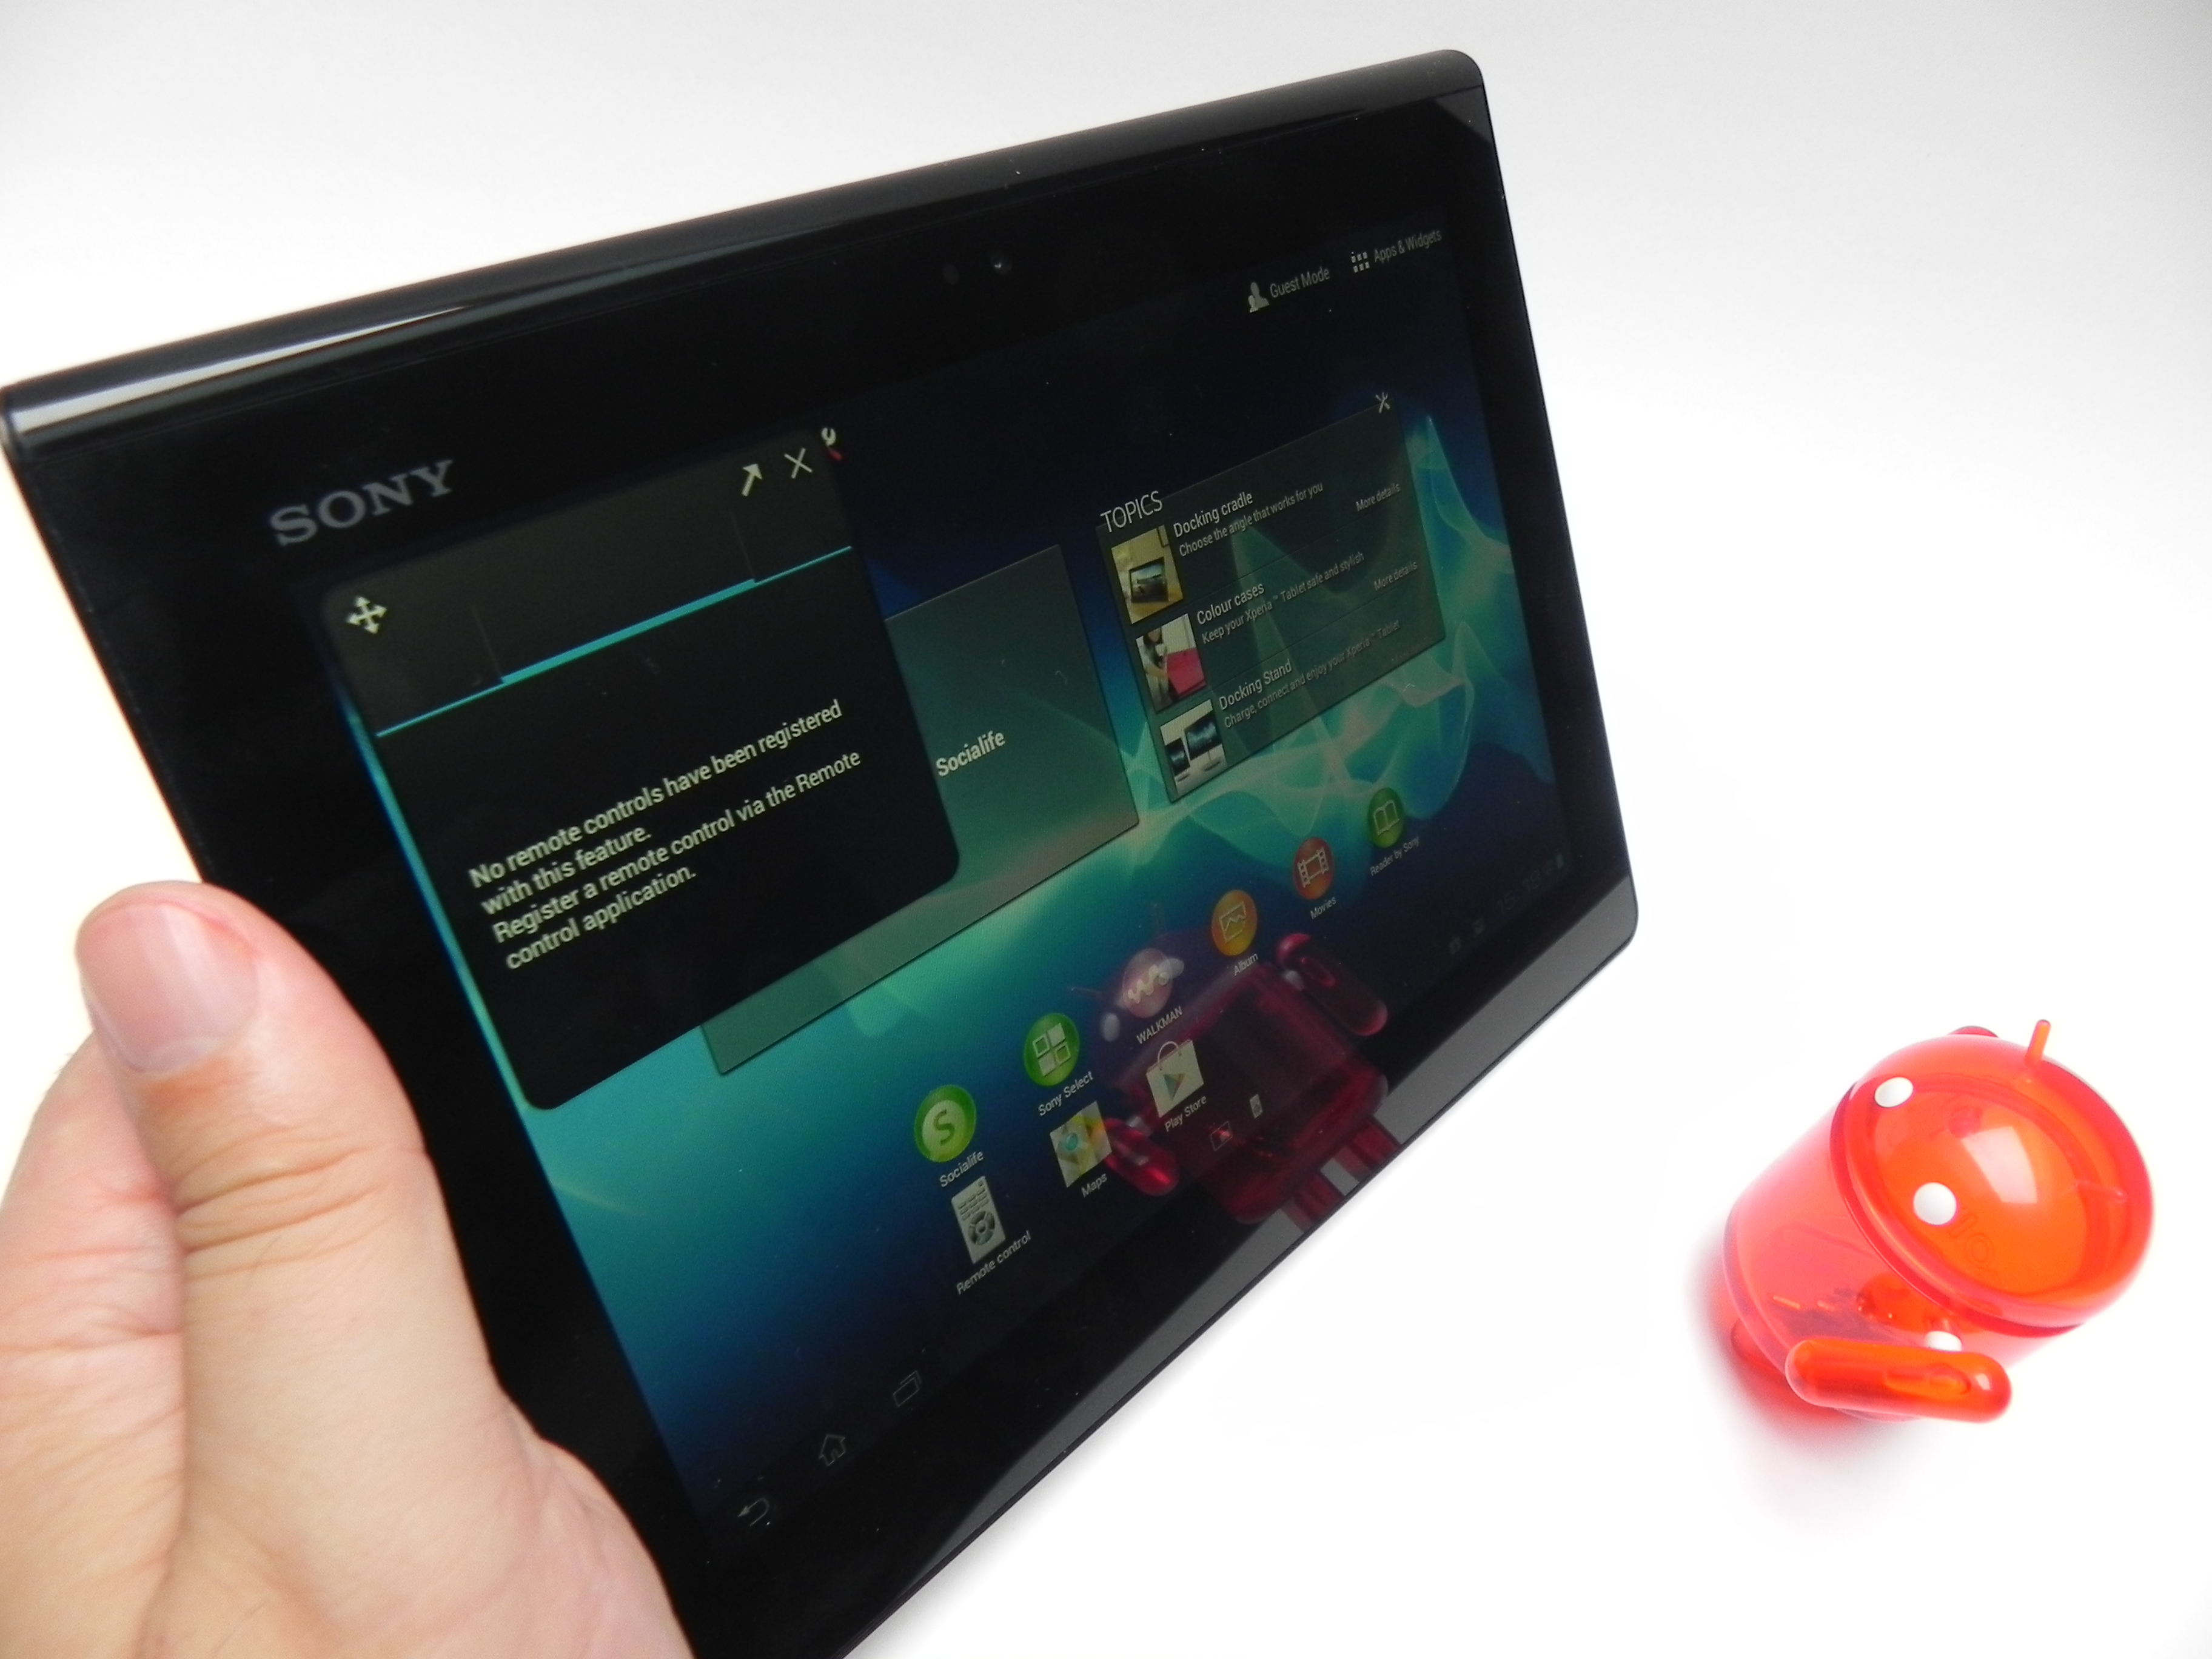 Sony-Xperia-tablet-s-review-tablet-news-com-31 - Tablet News